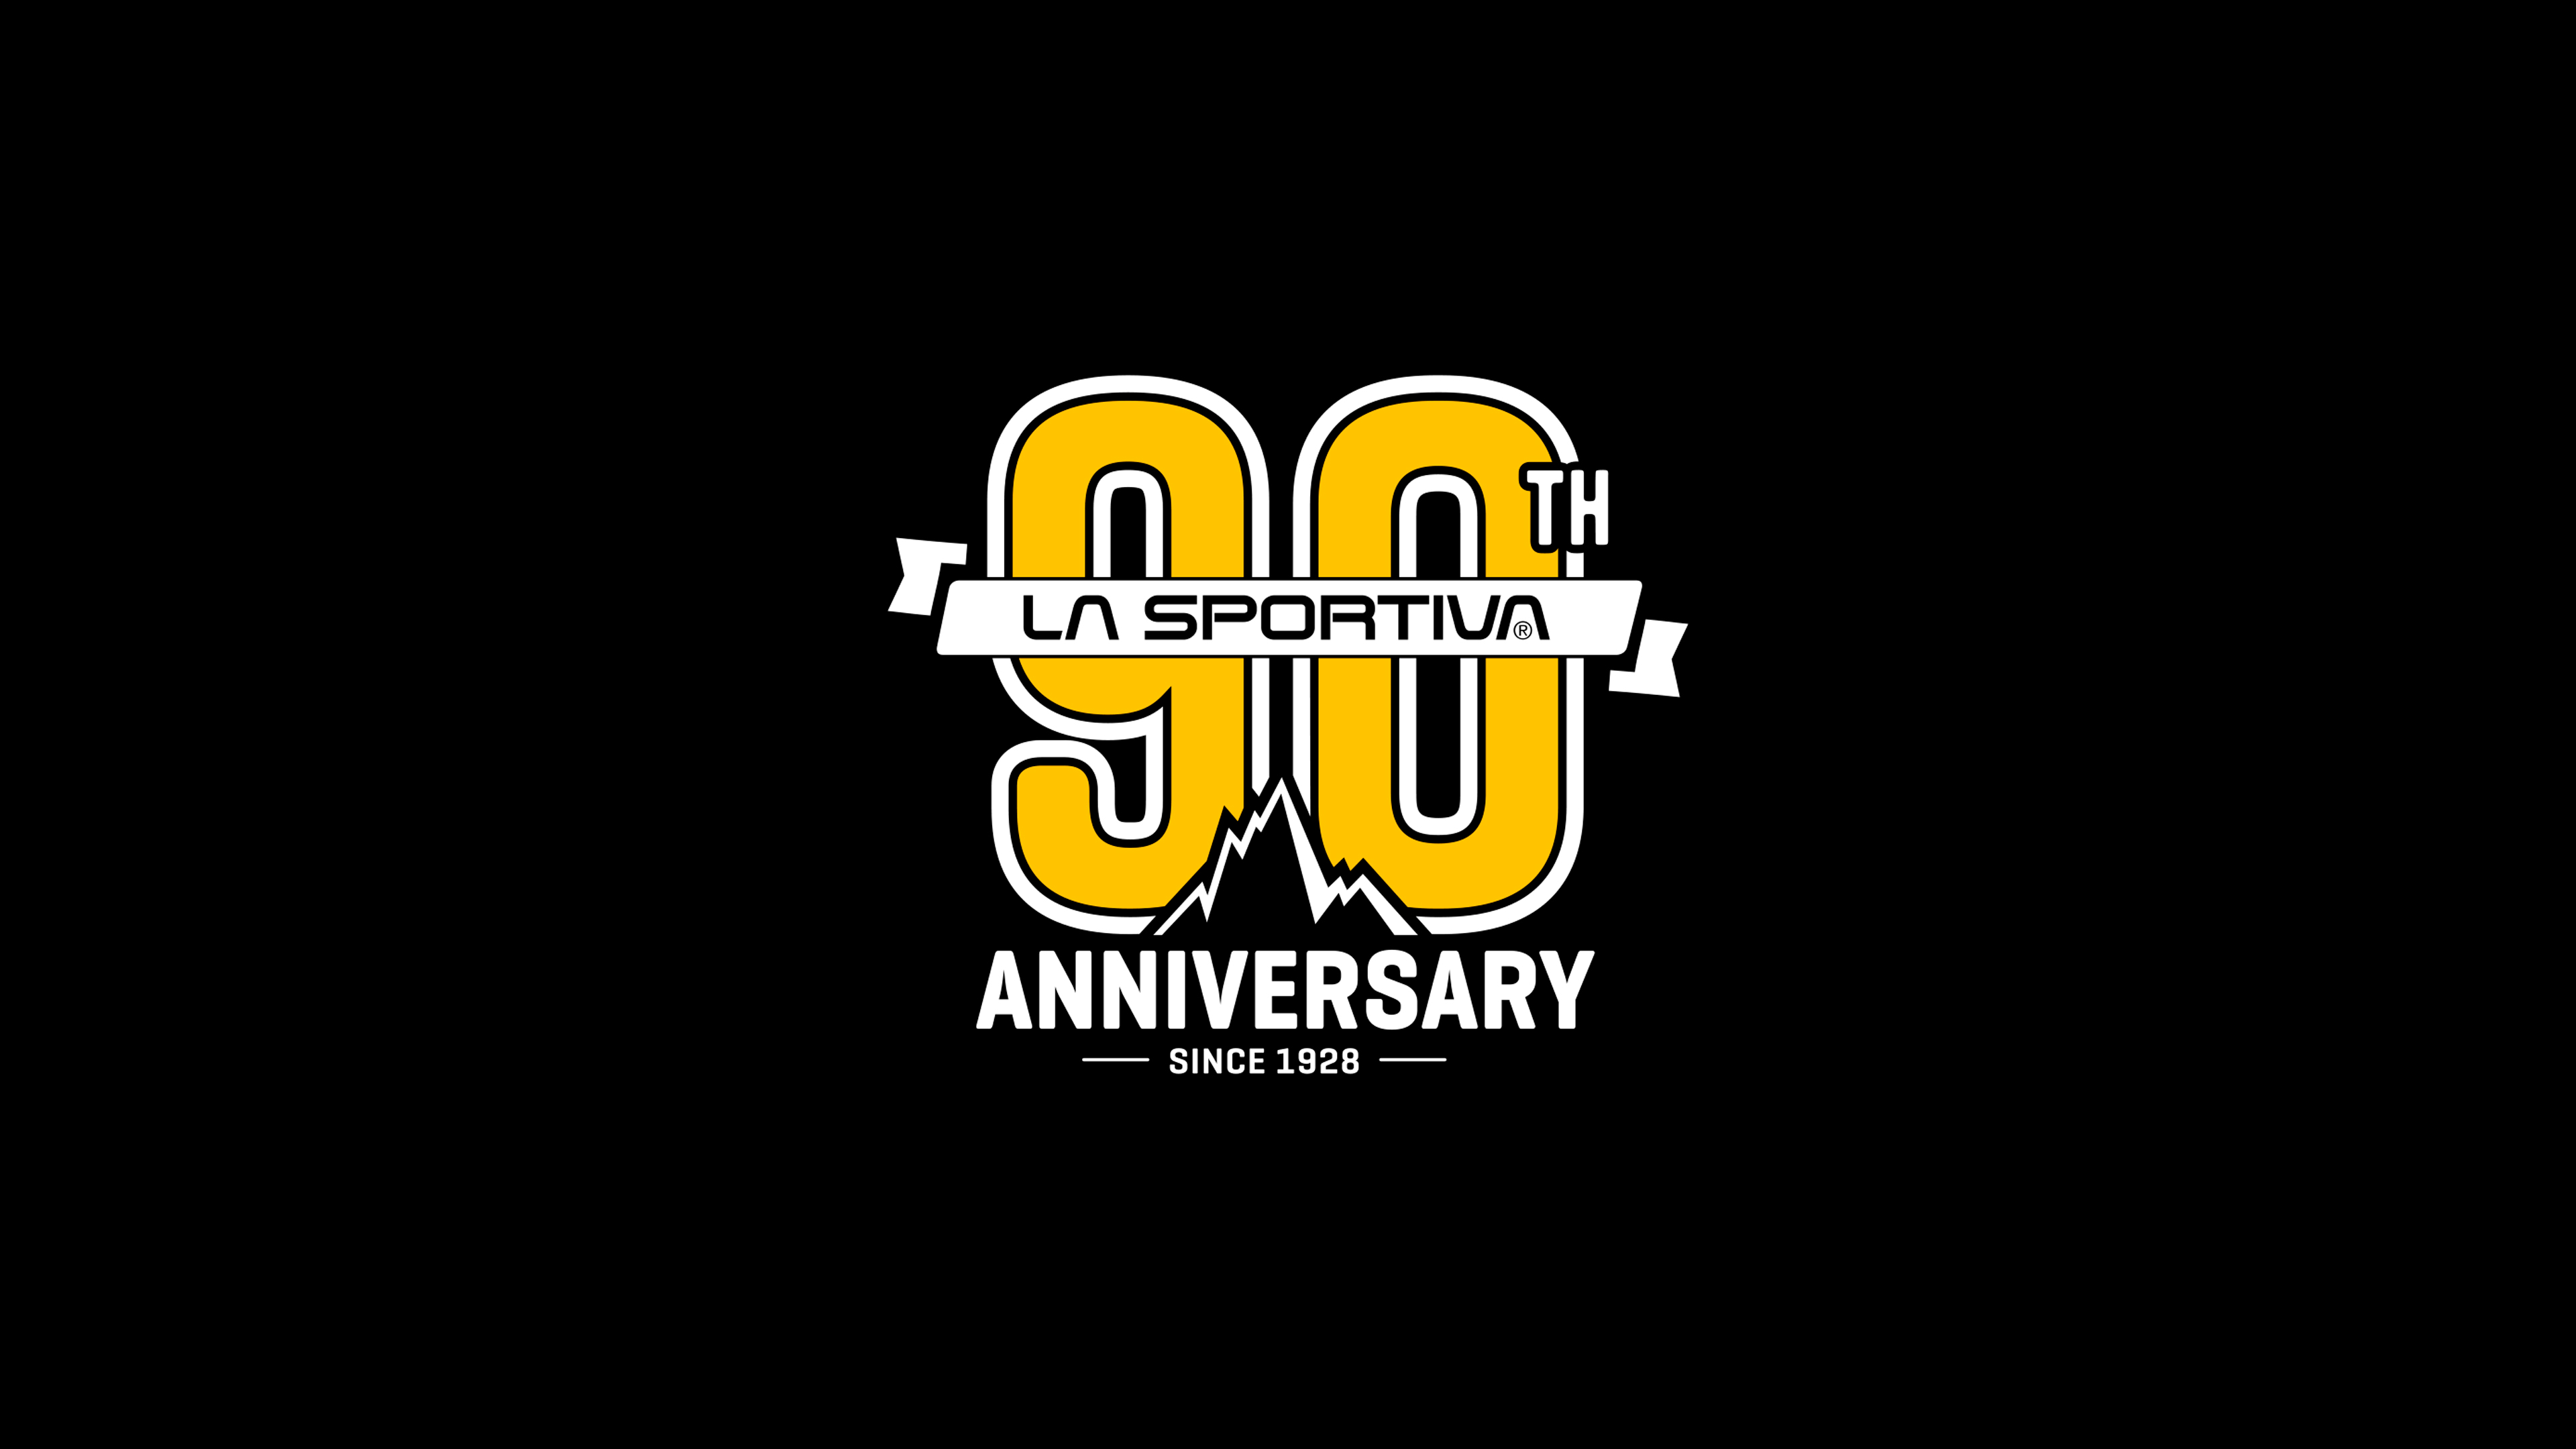 La Sportiva 90th Anniversary – Event Resume